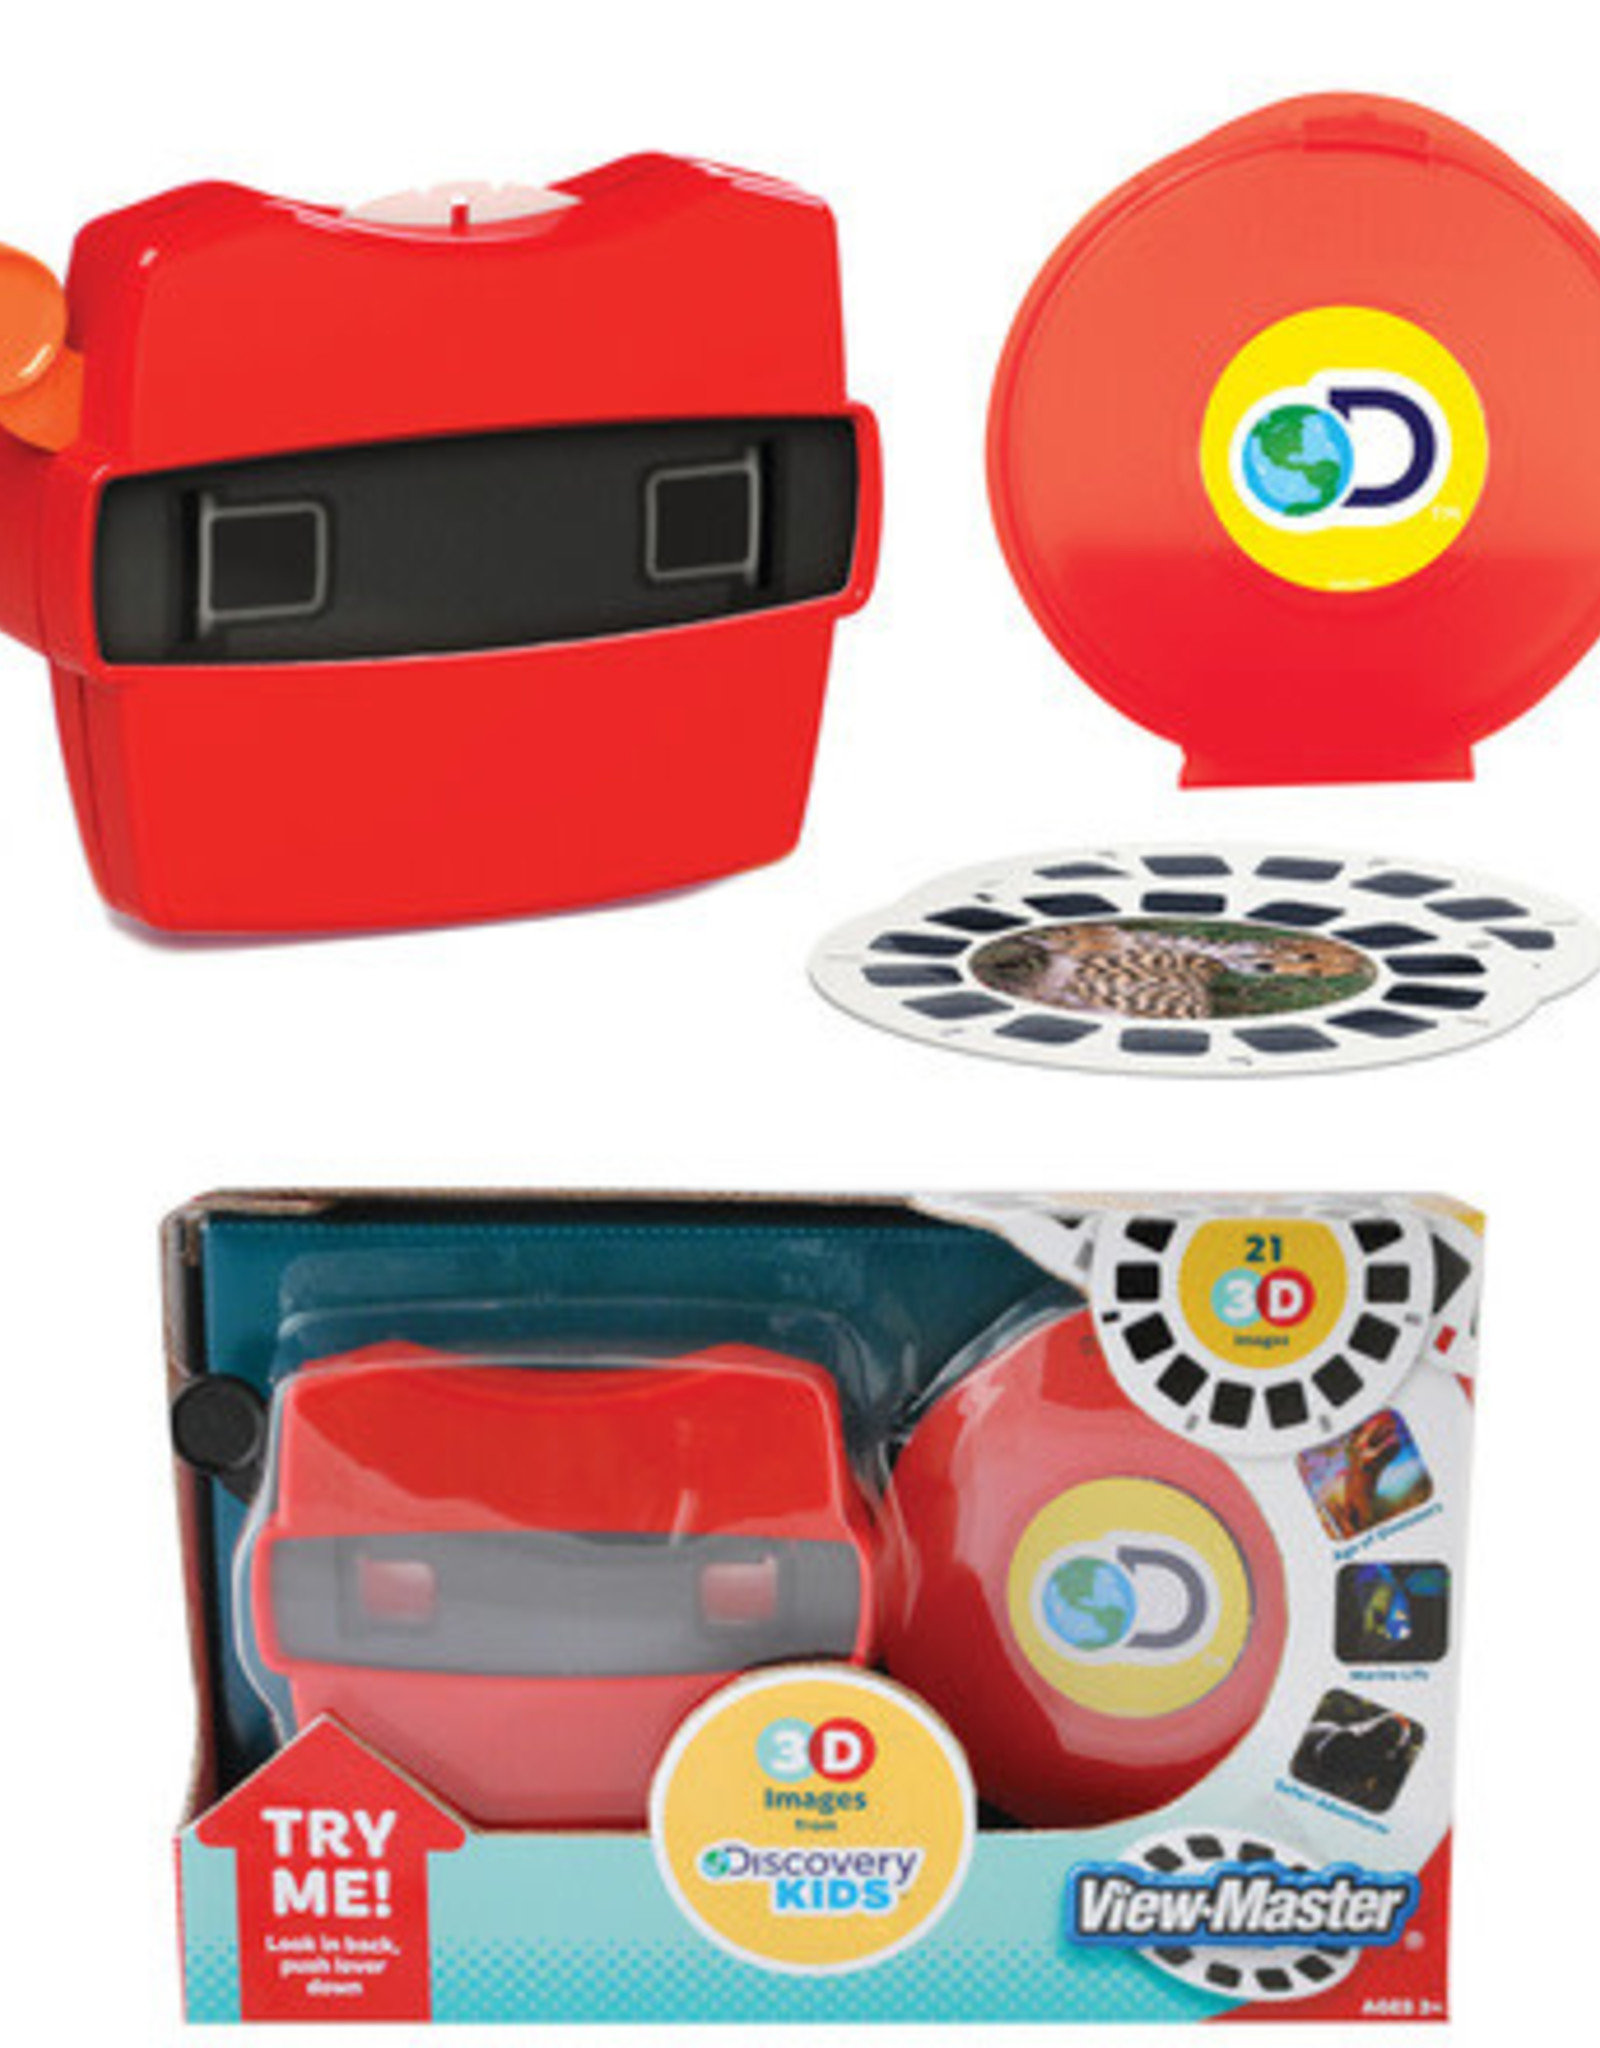 Discovery Viewmaster Boxed Set